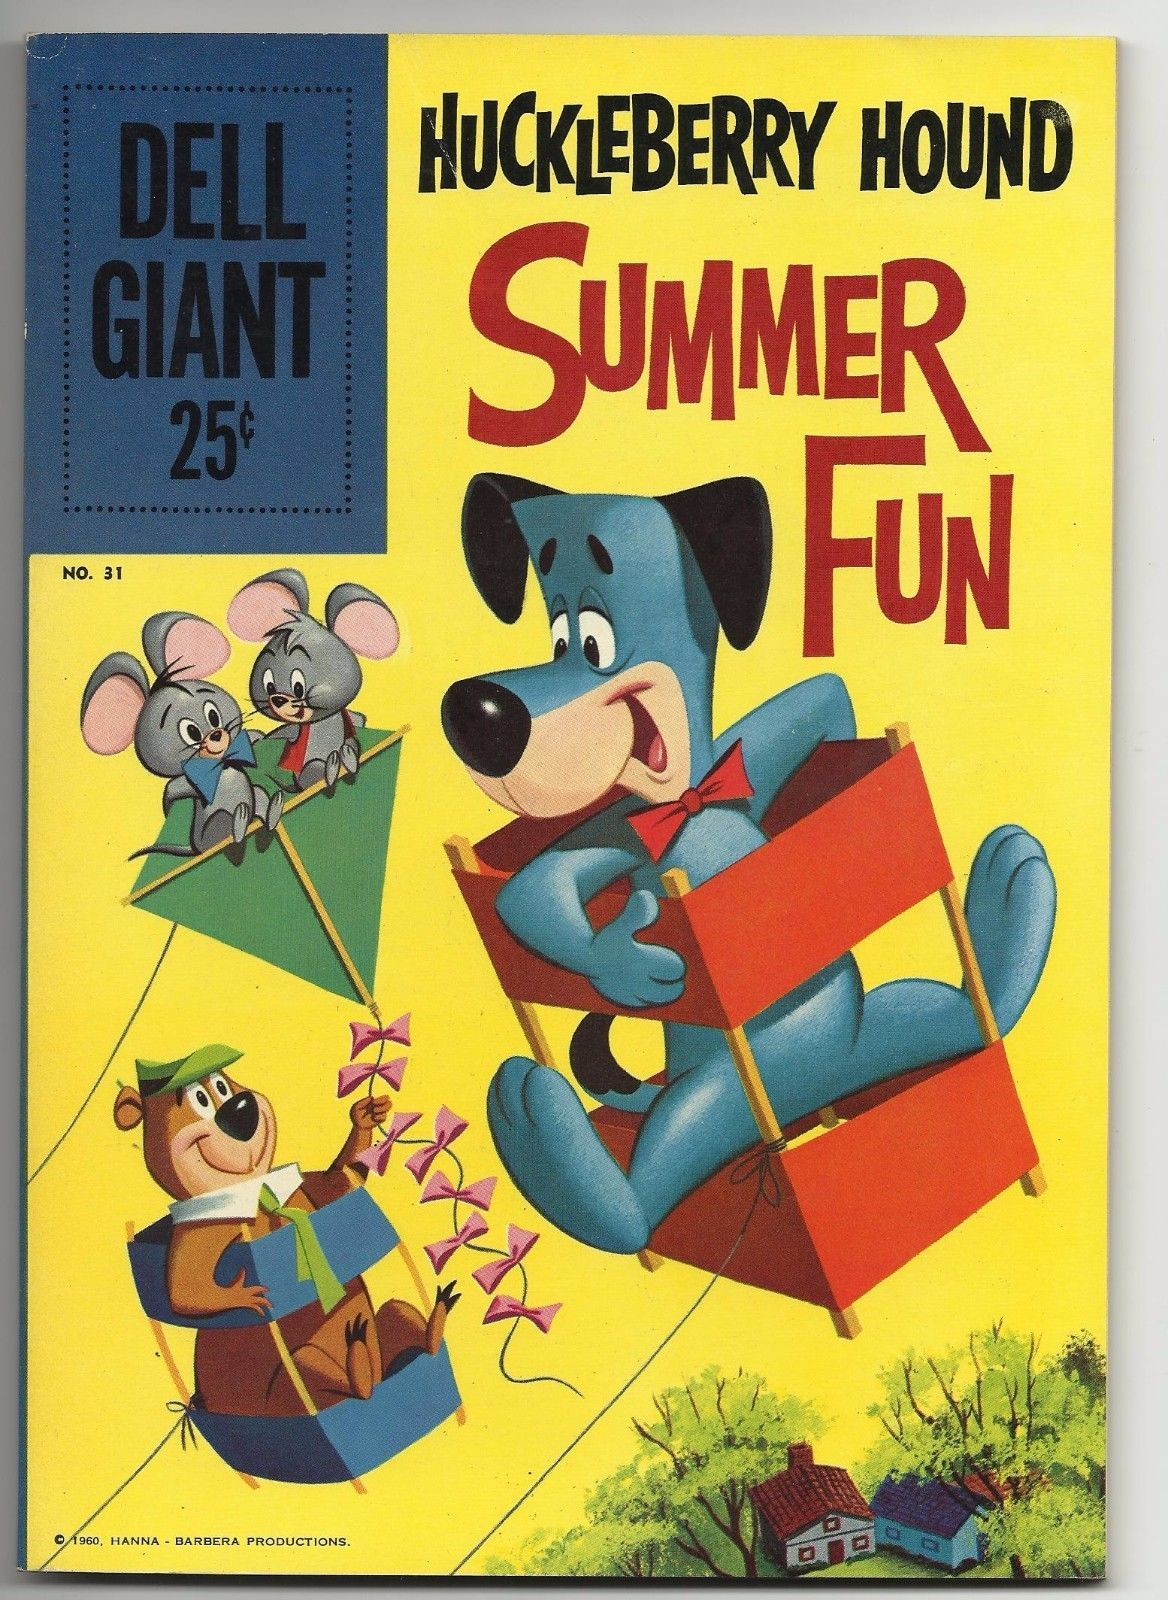 Dell Giant #31 Huckleberry Hound Summer Fun - beautiful fine 6.0 copy Yogi Bear